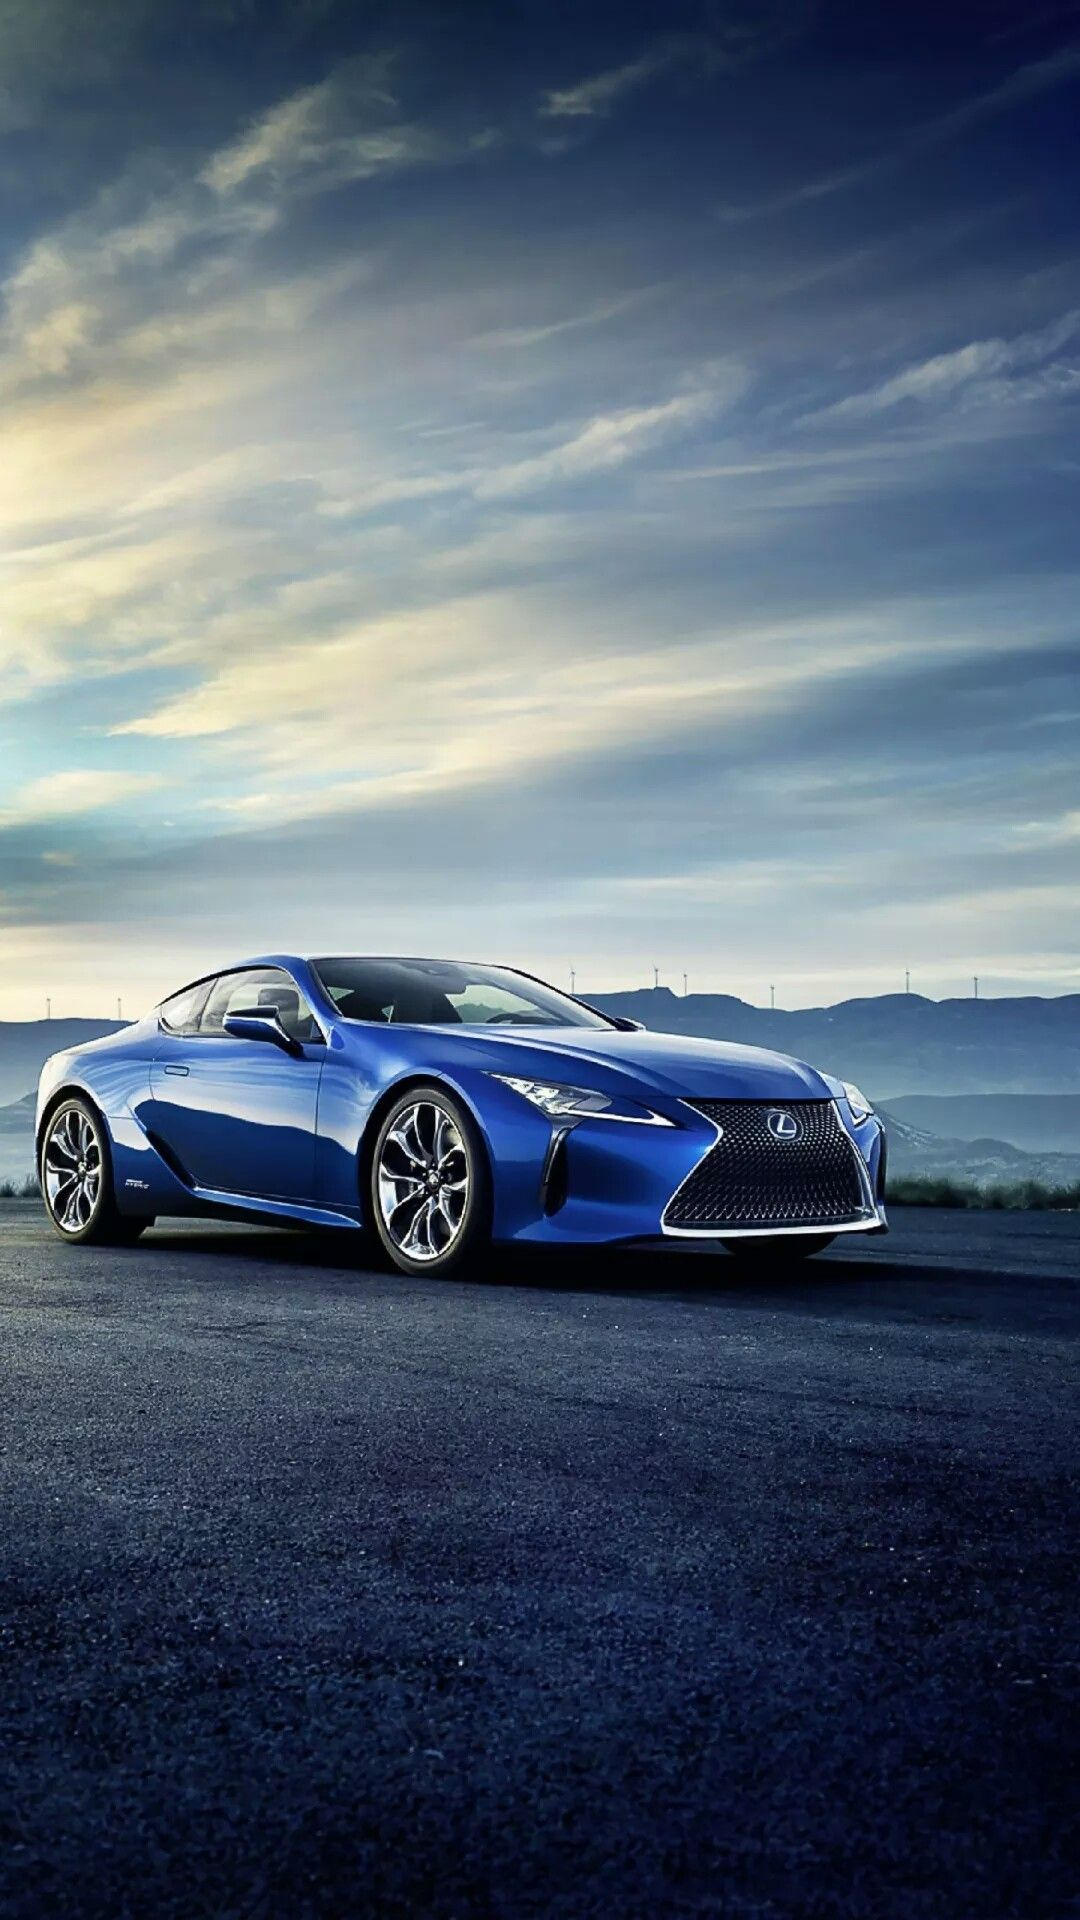 Pin by Elena Rodriguez on ️Royal blue ️ Lexus lc, Car